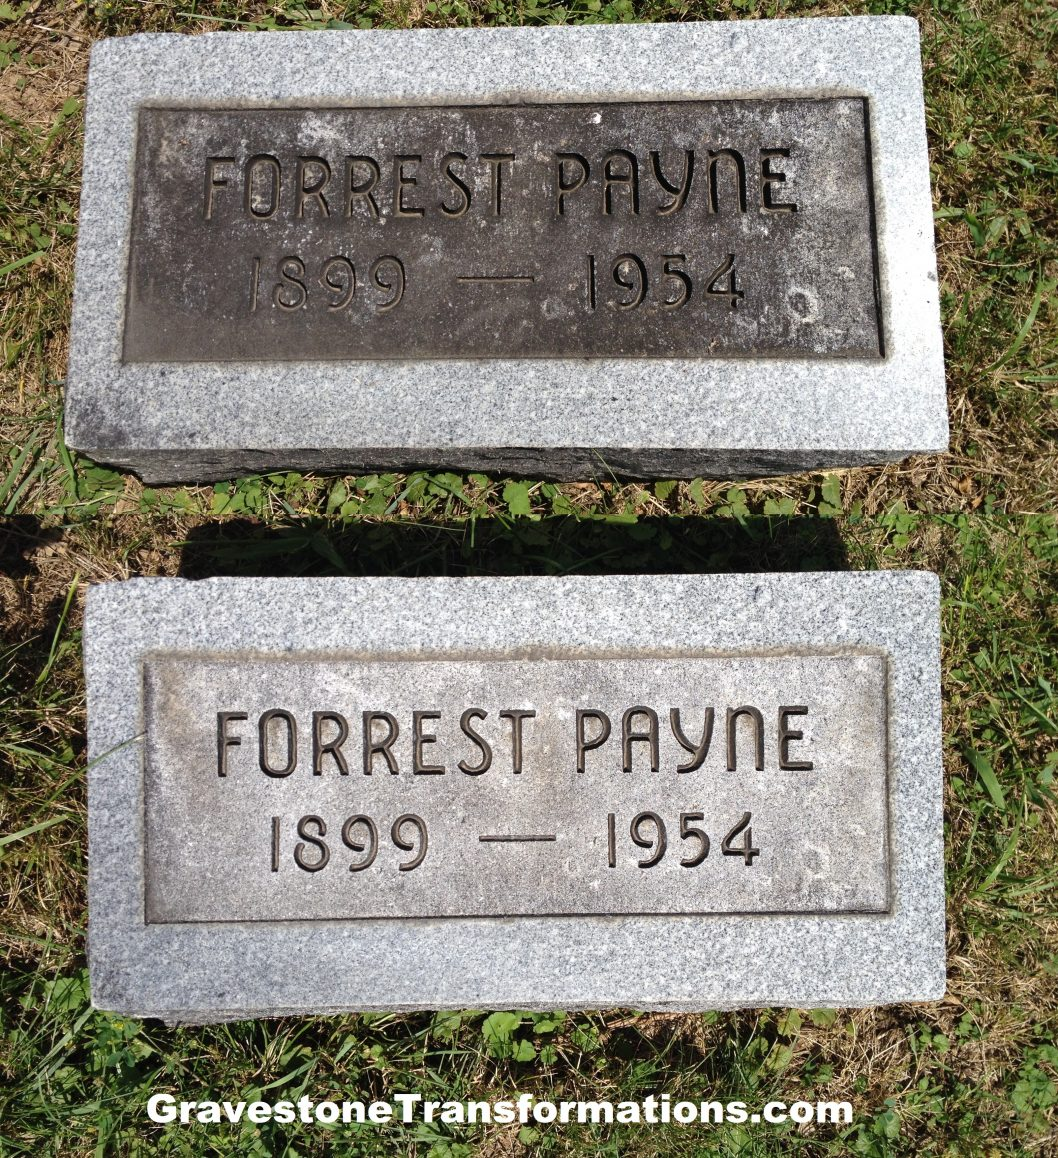 Gravestone Transformations - Forrest Payne - Browns Chapel Cemetery - Clarksburg, Ohio - before and after cleaning